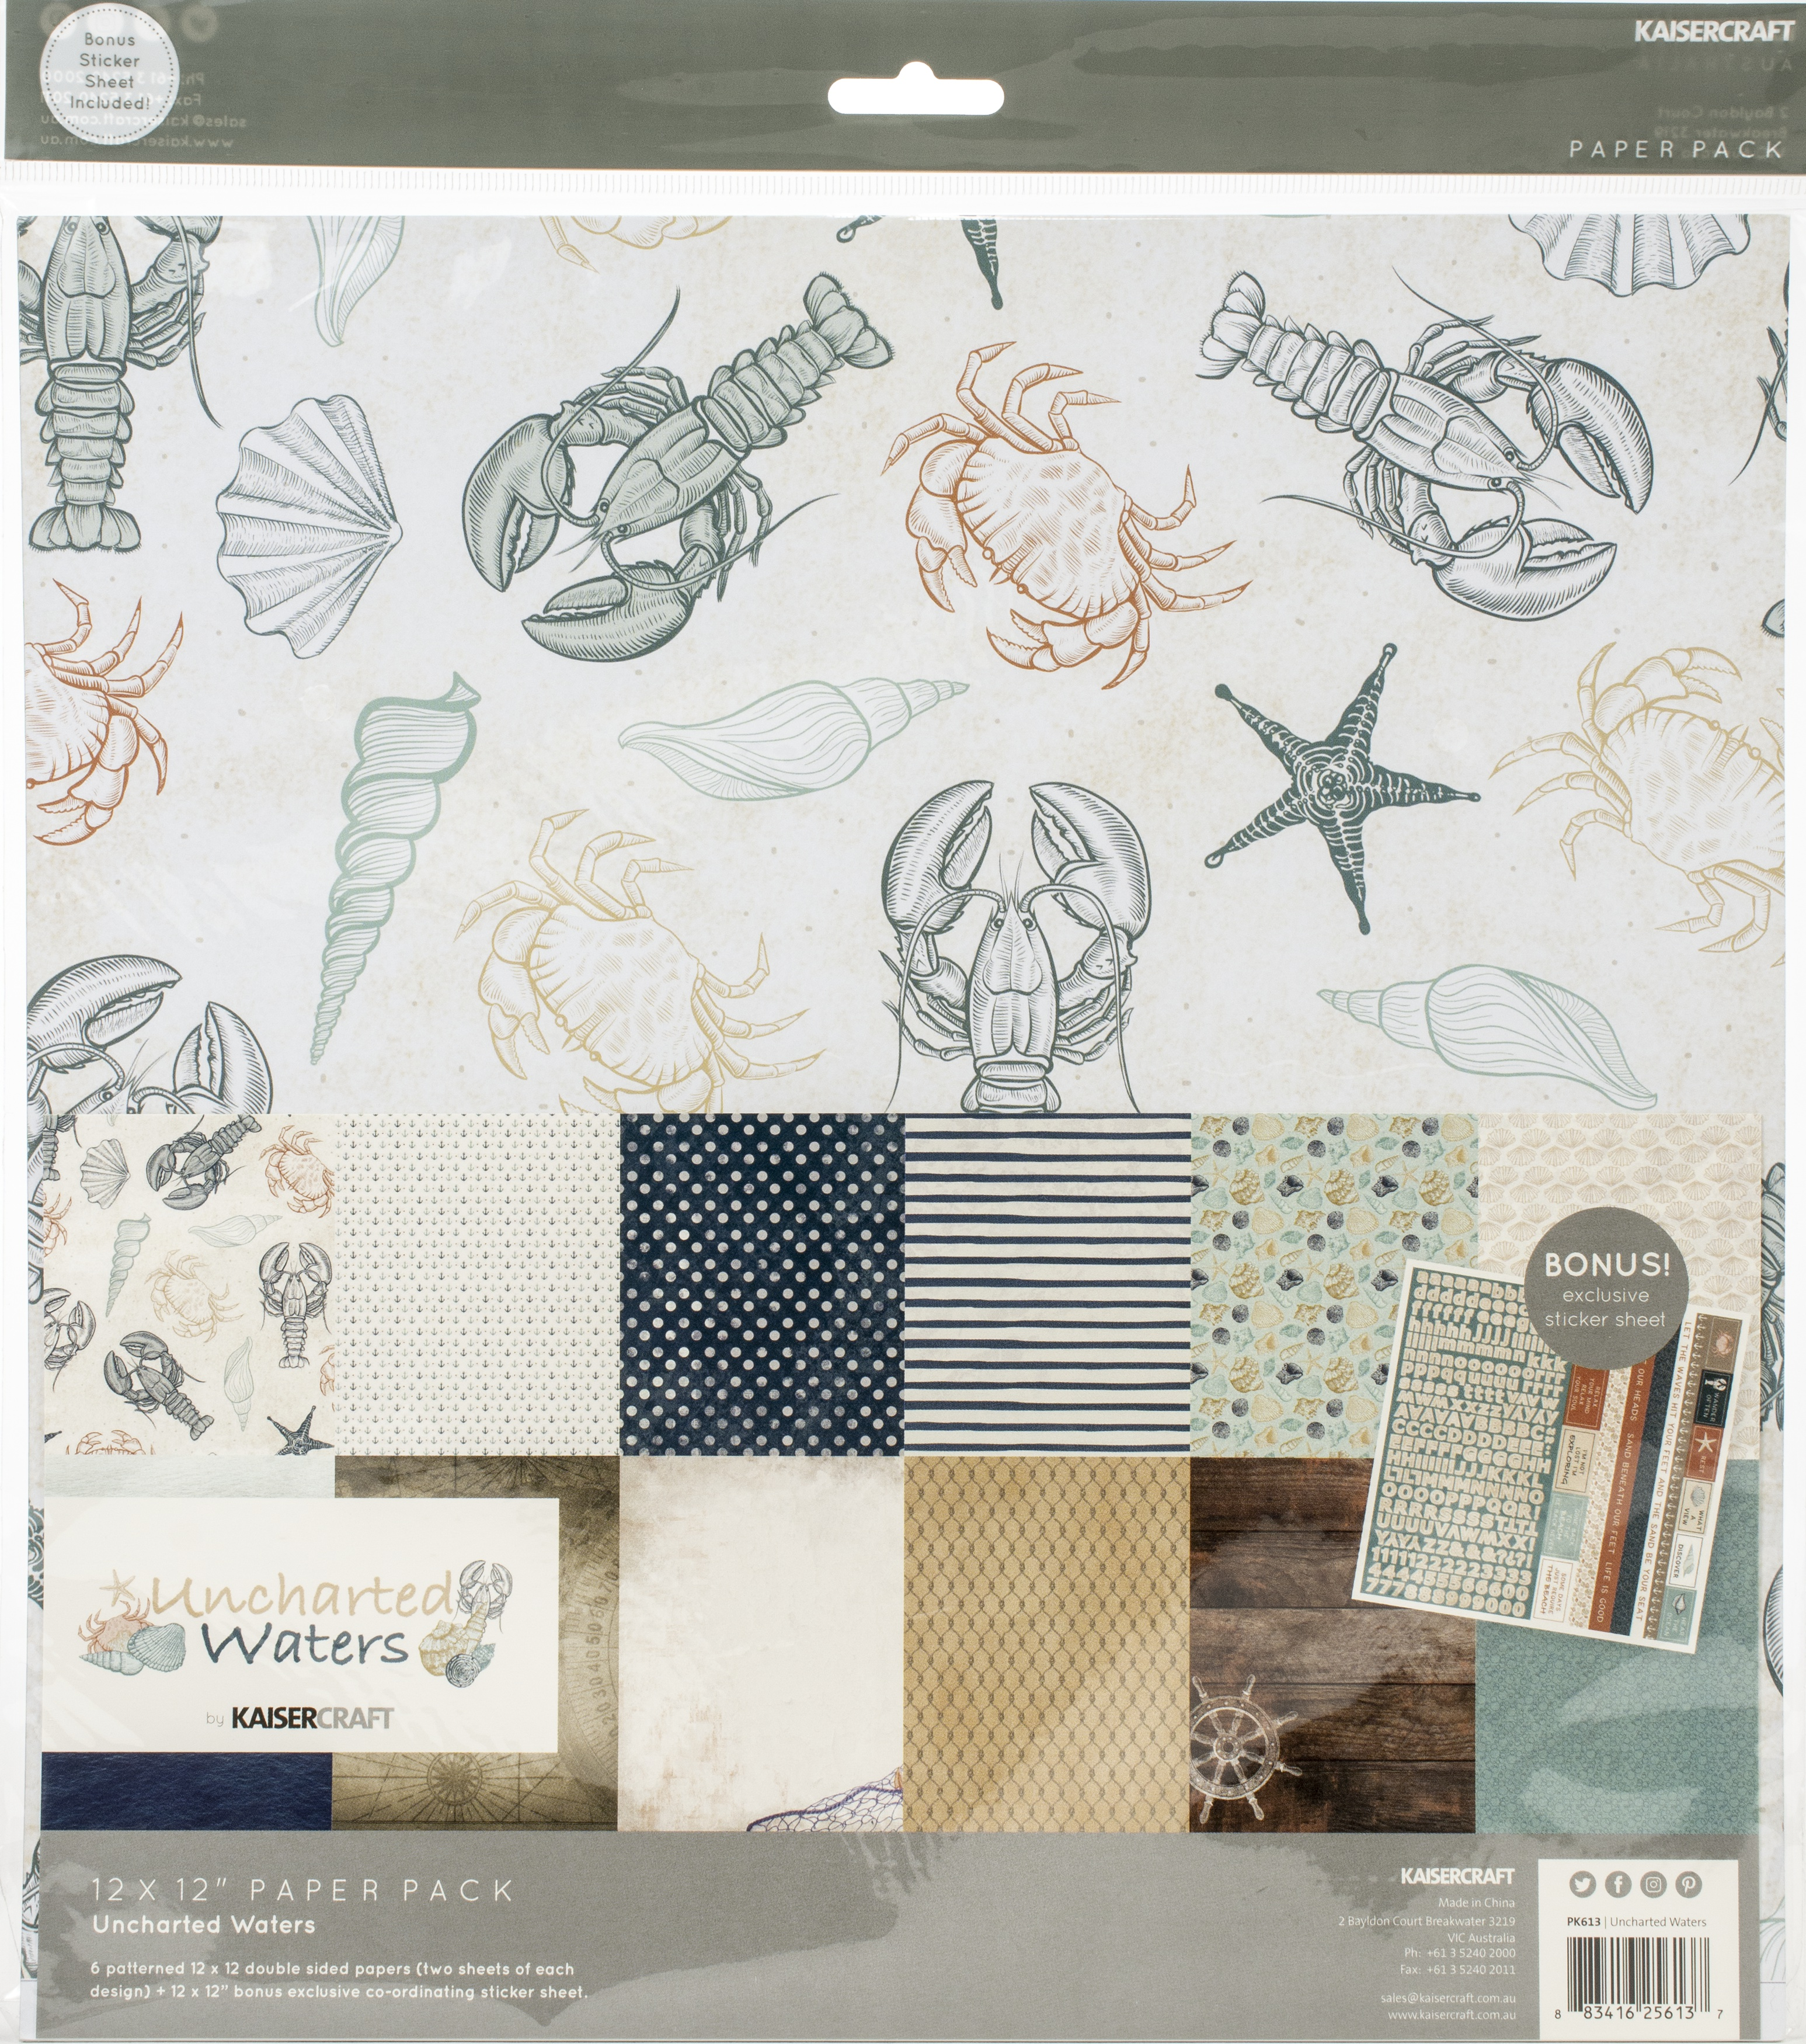 Kaisercraft Paper Pack 12X12 12/Pkg-Uncharted Waters